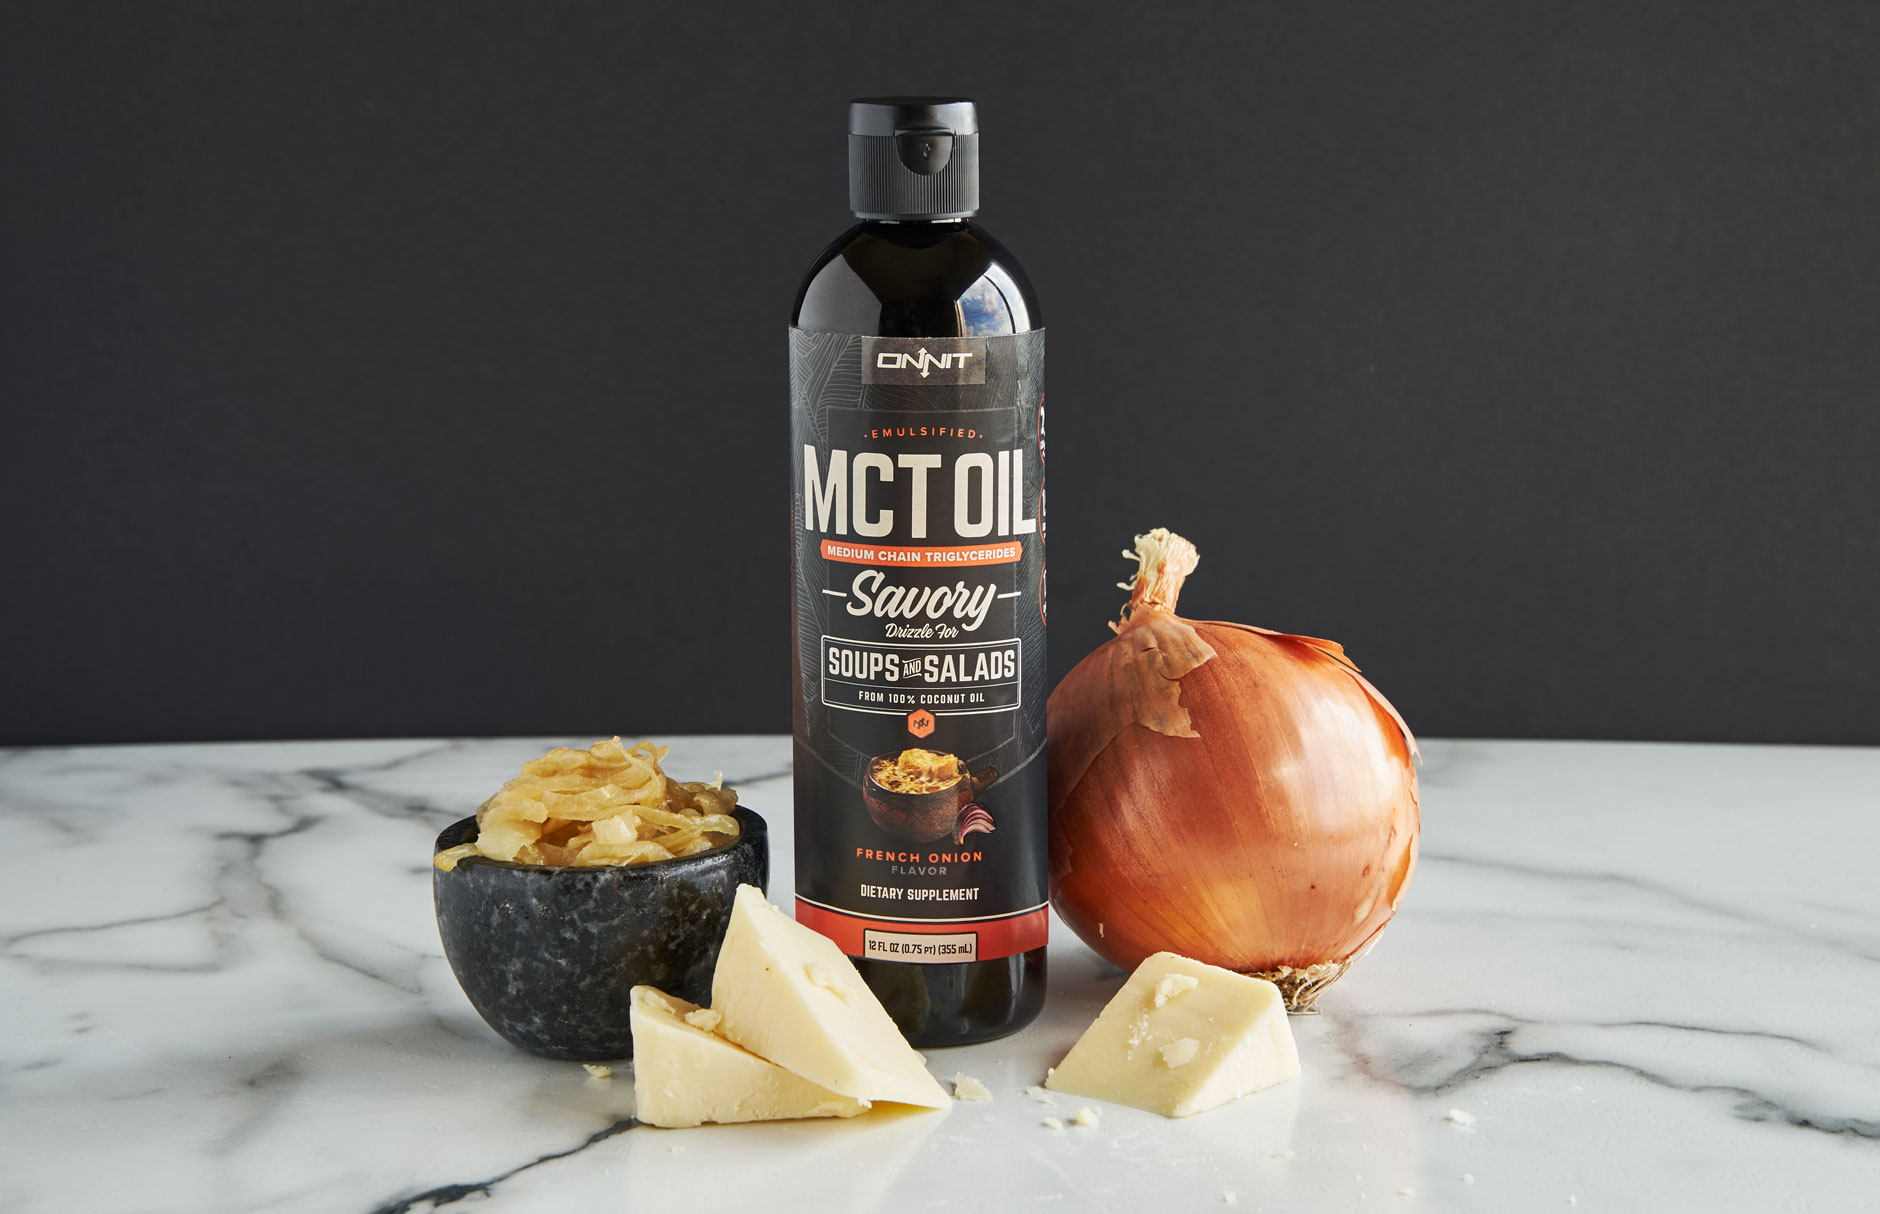 Onnit Savory Emulsified MCT Oil, French Onion Flavor